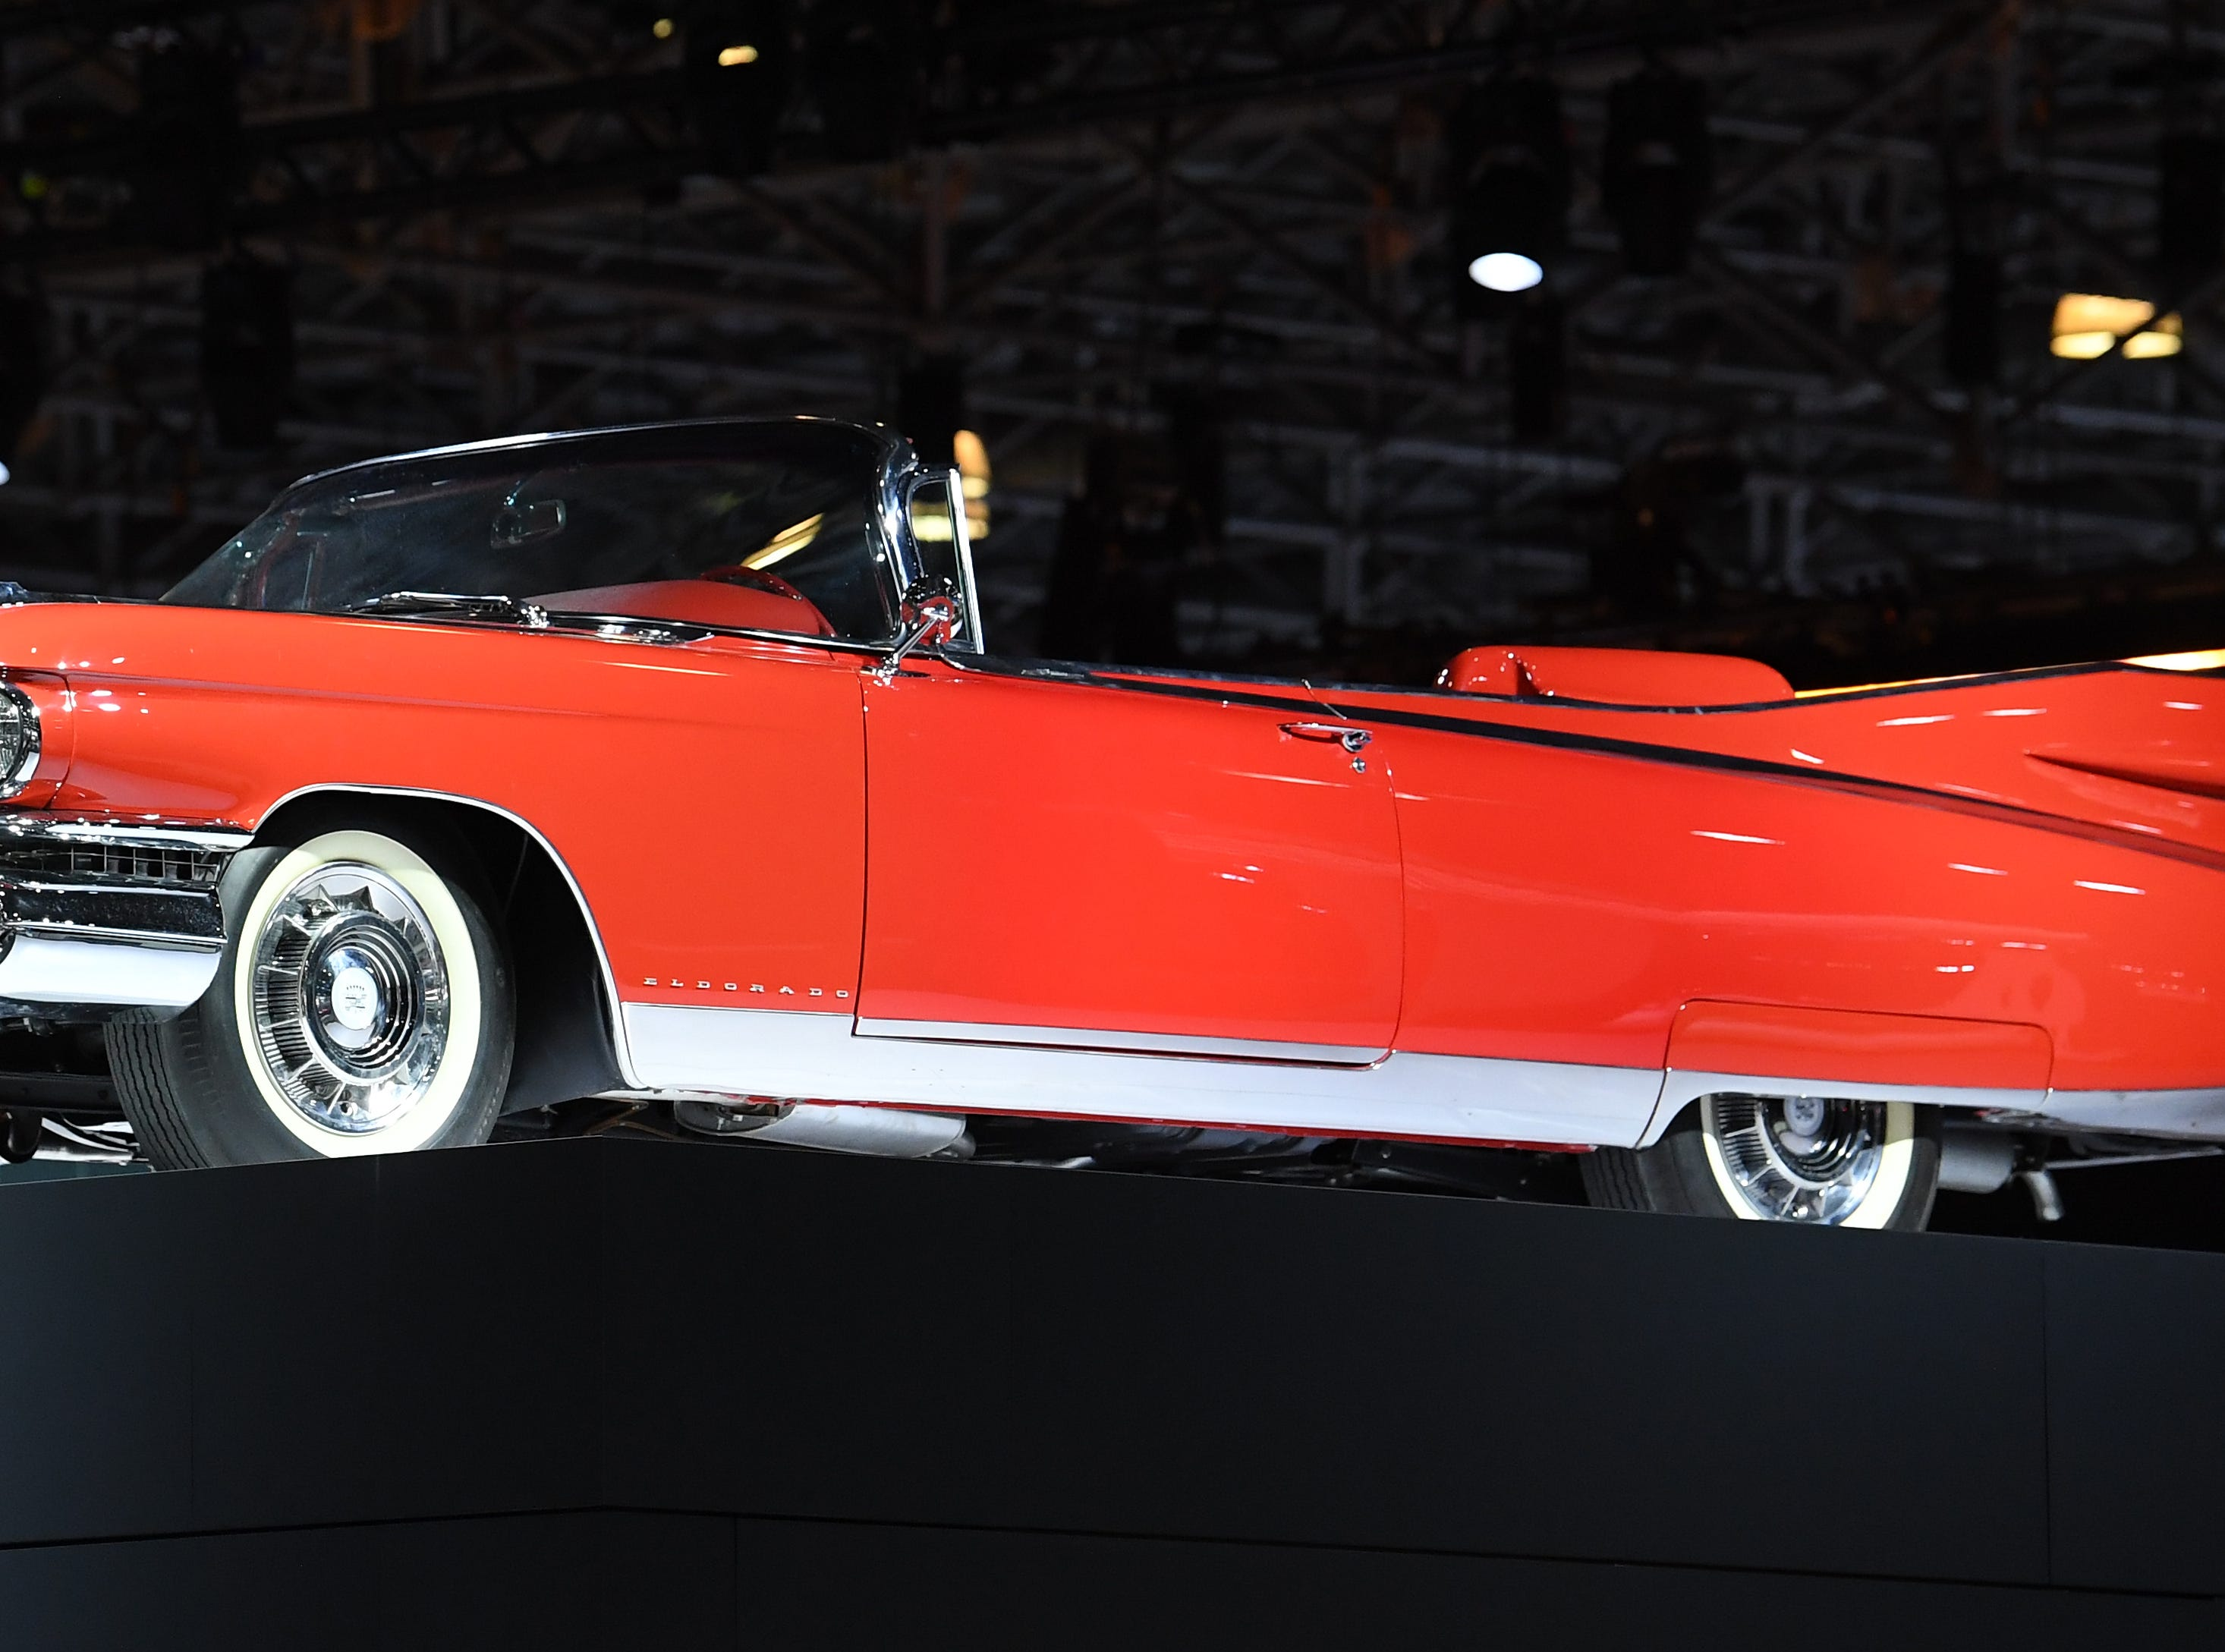 '59 Eldorado Biarritz Convertible on display at the New York International Auto Show.